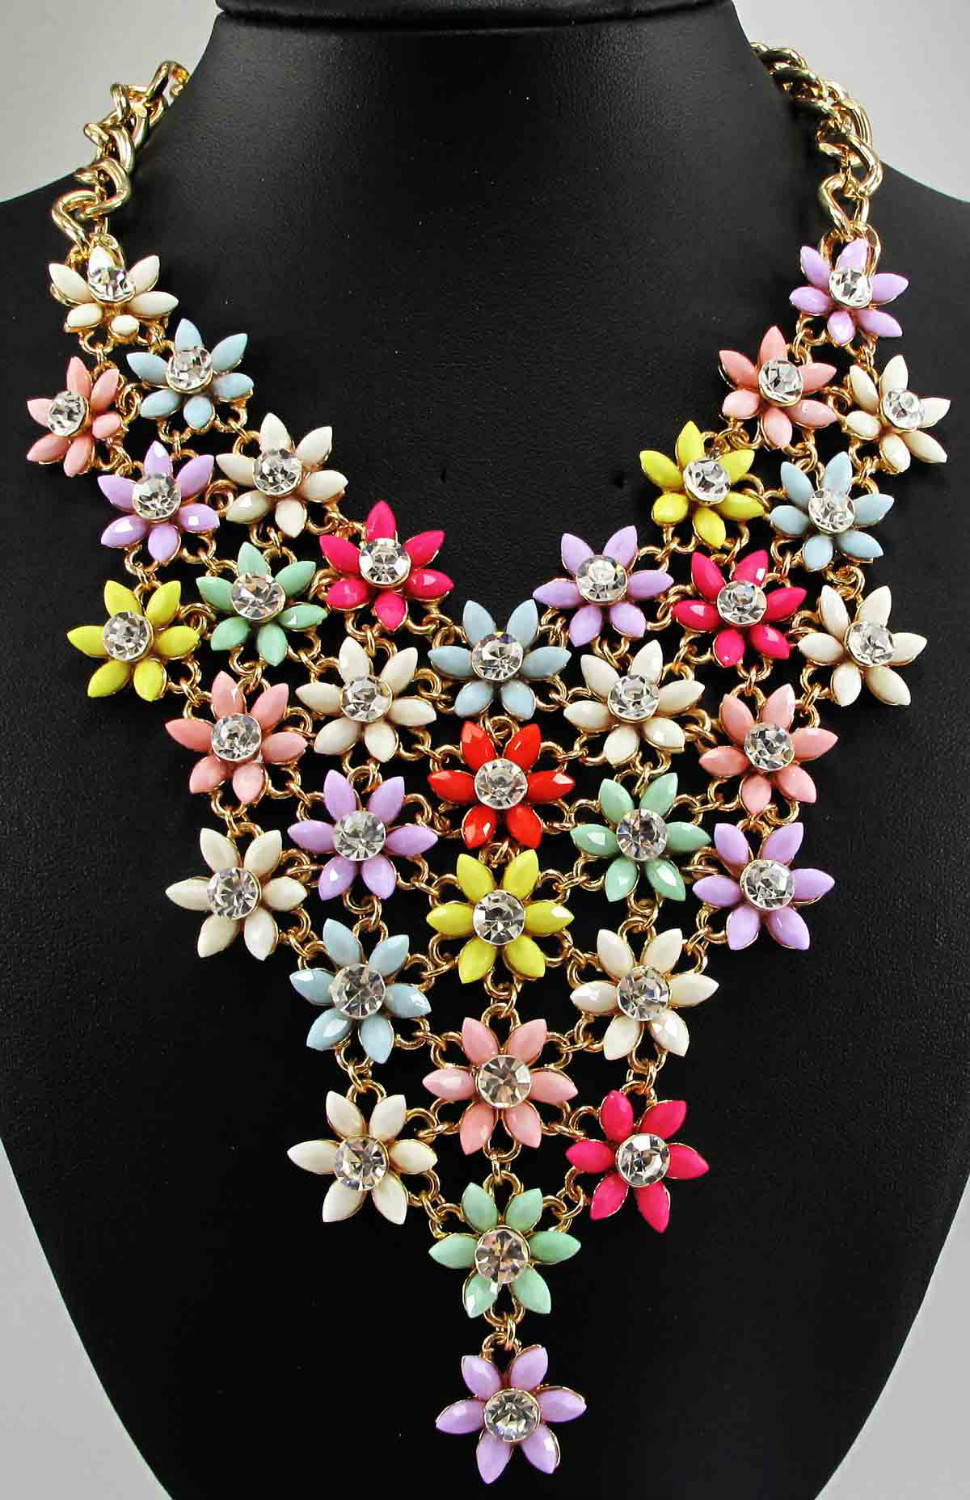 Newest long handmade Gorgeous Fashion Necklace Jewelry crystal ra Department Statement Necklace Women Choker Necklaces Pendants(China (Mainland))